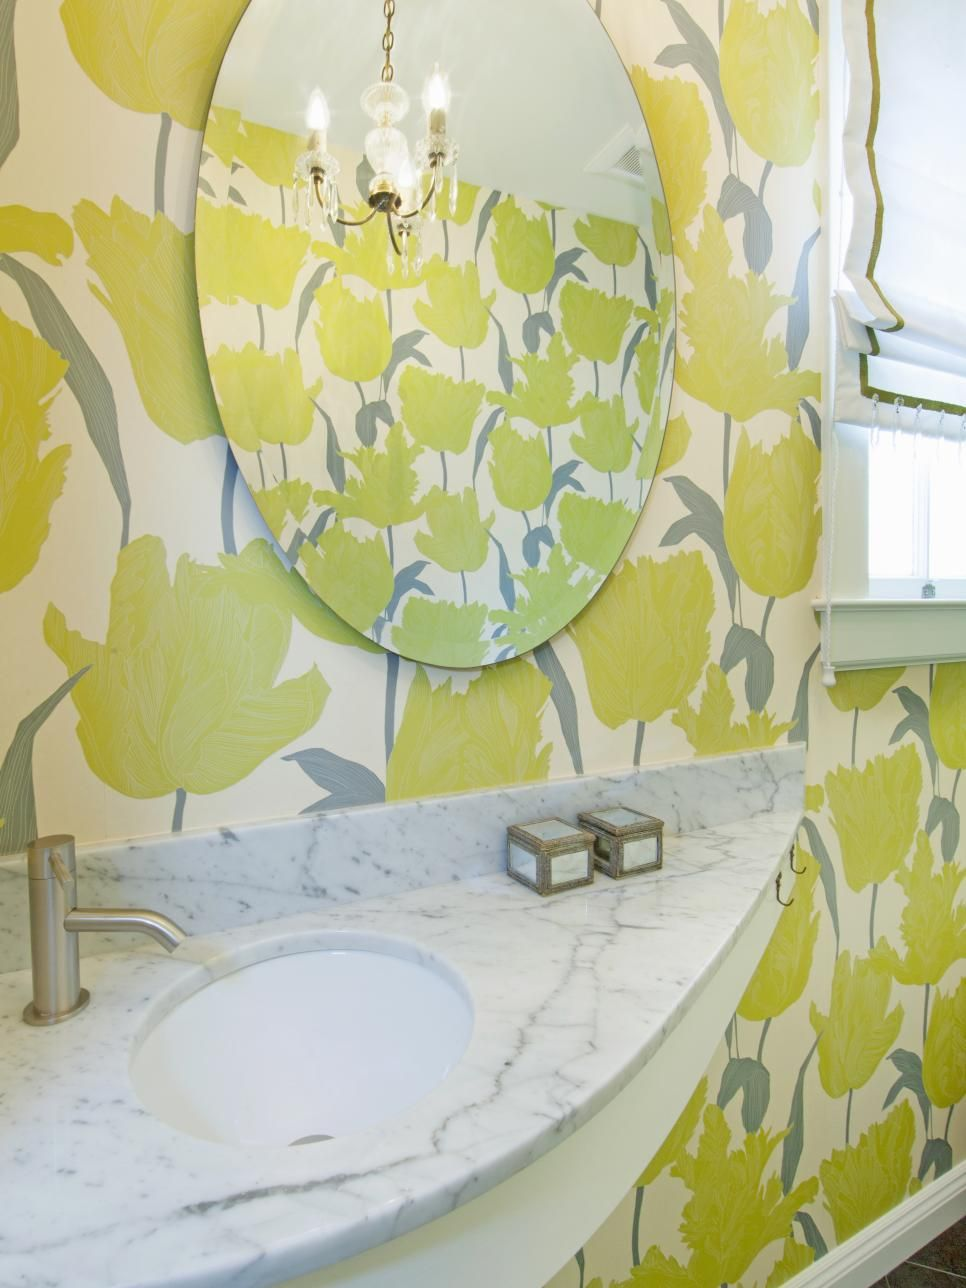 A Small Bathroom Is A Great Place To Try Out A Bold Wallpaper Such As The Yellow And Gray Floral Wallp Modern Shower Tile Grey Floral Wallpaper Small Bathroom